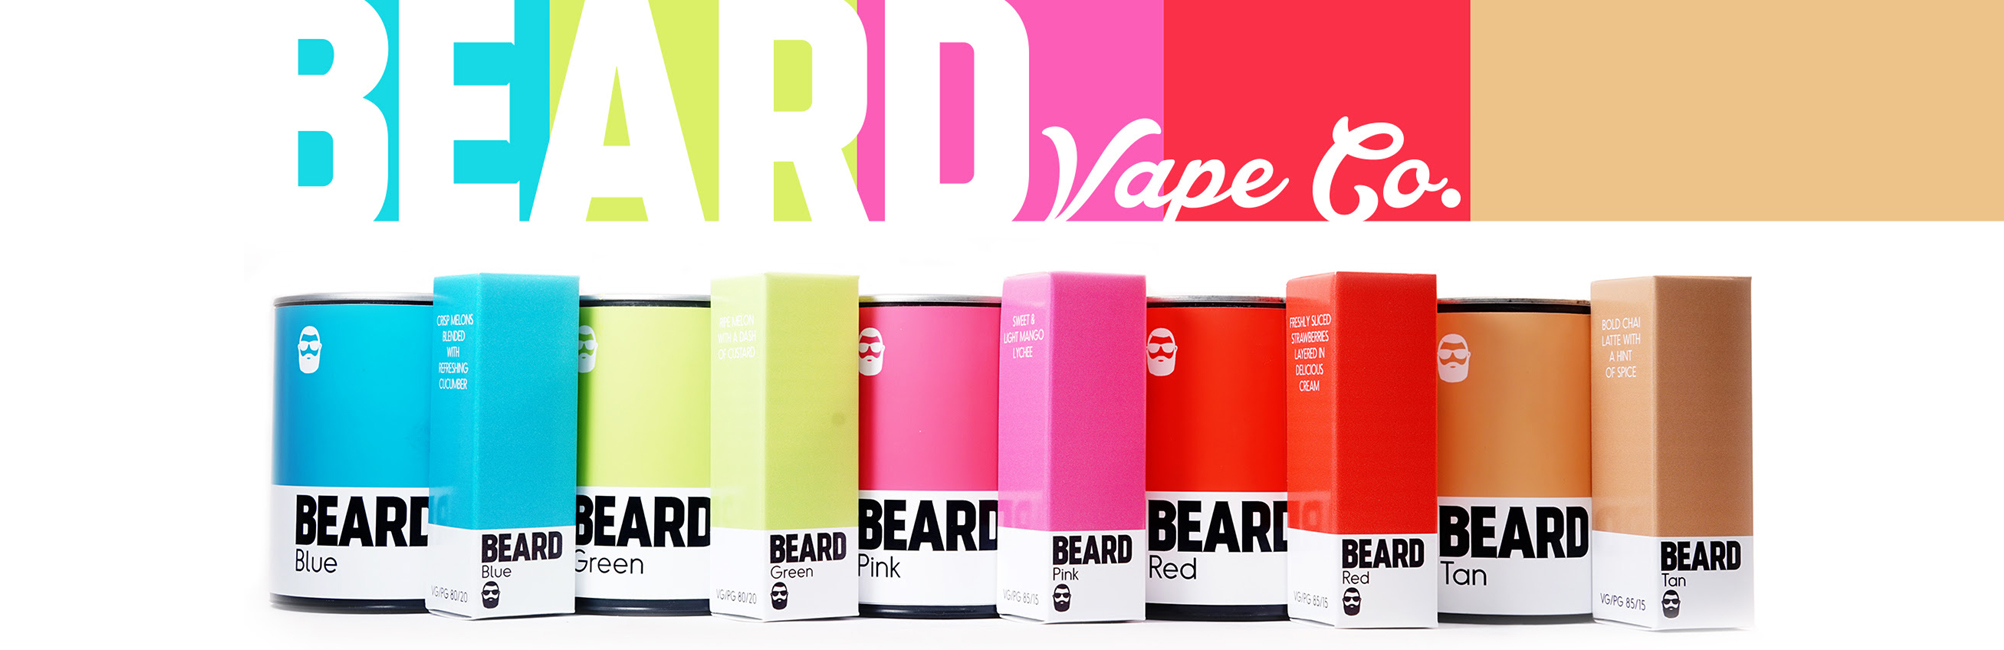 Beard Vape Co. | Color e-Liquids